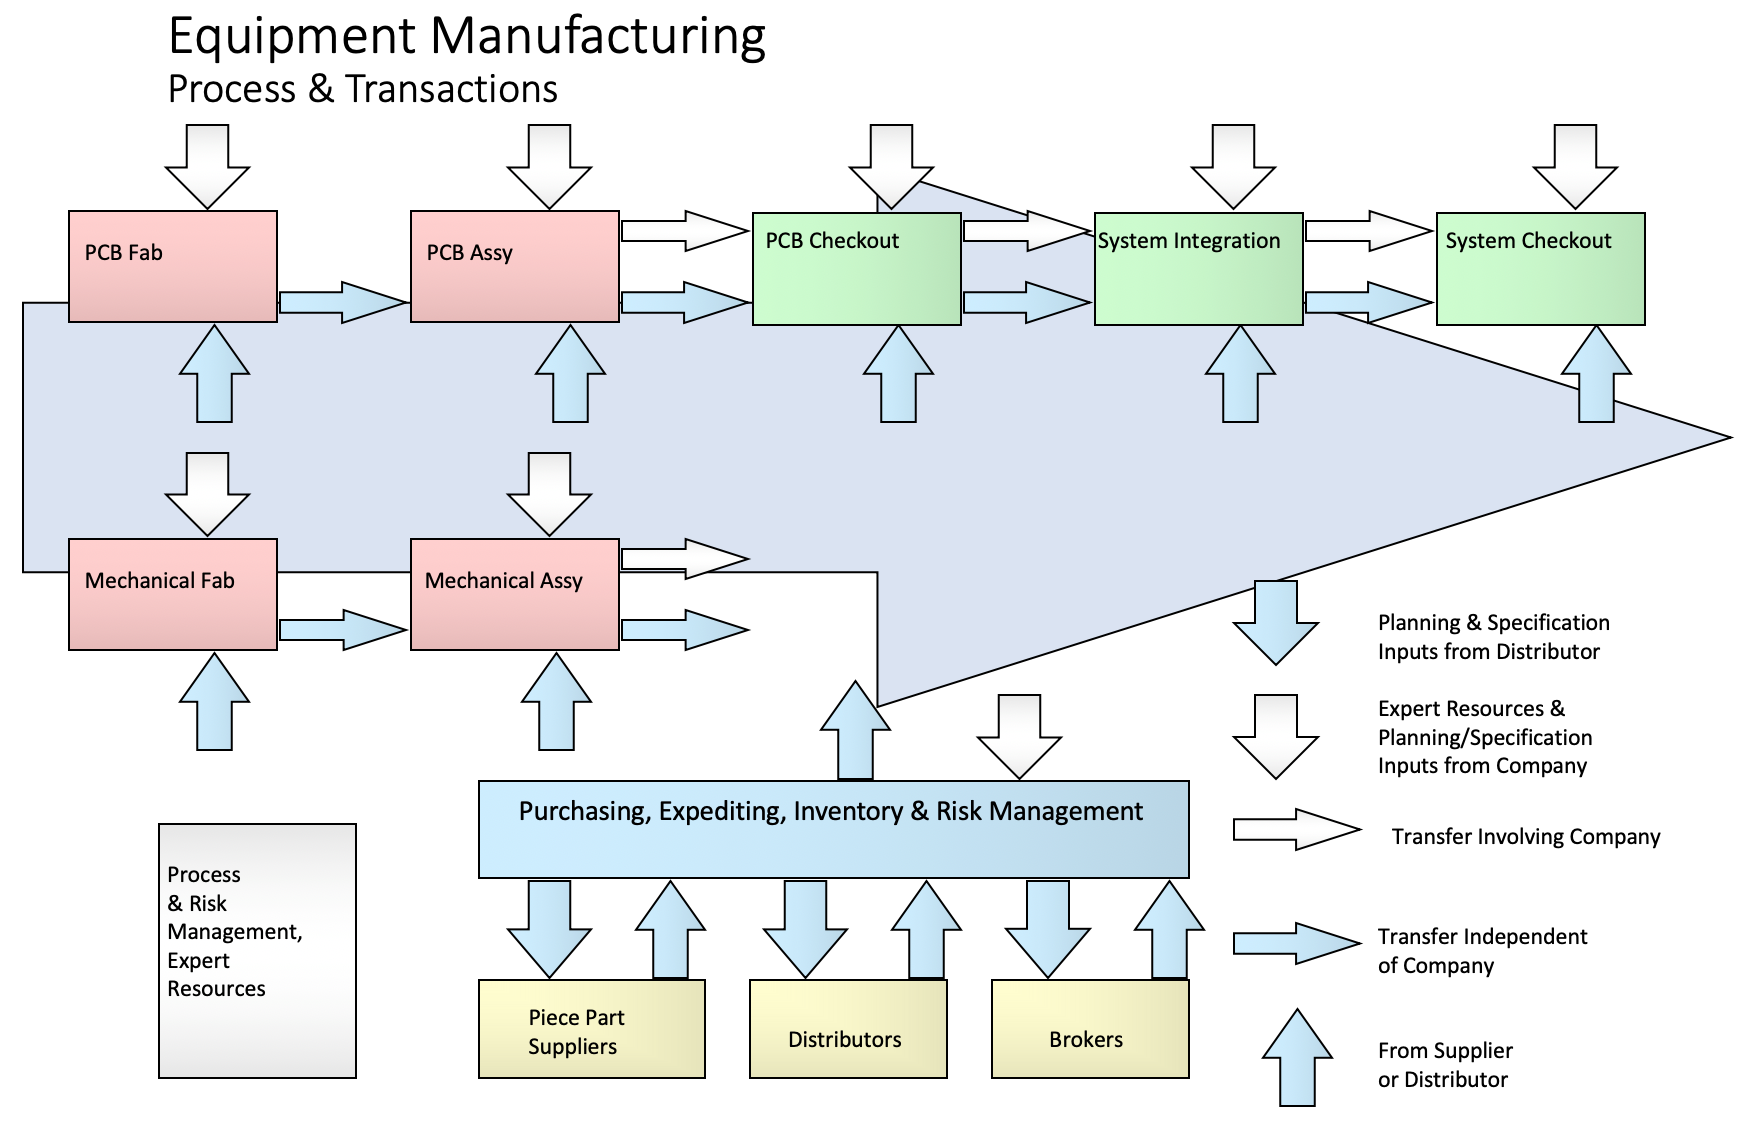 Infographic Describing and Overview of the Test Equipment Manufacturing Process